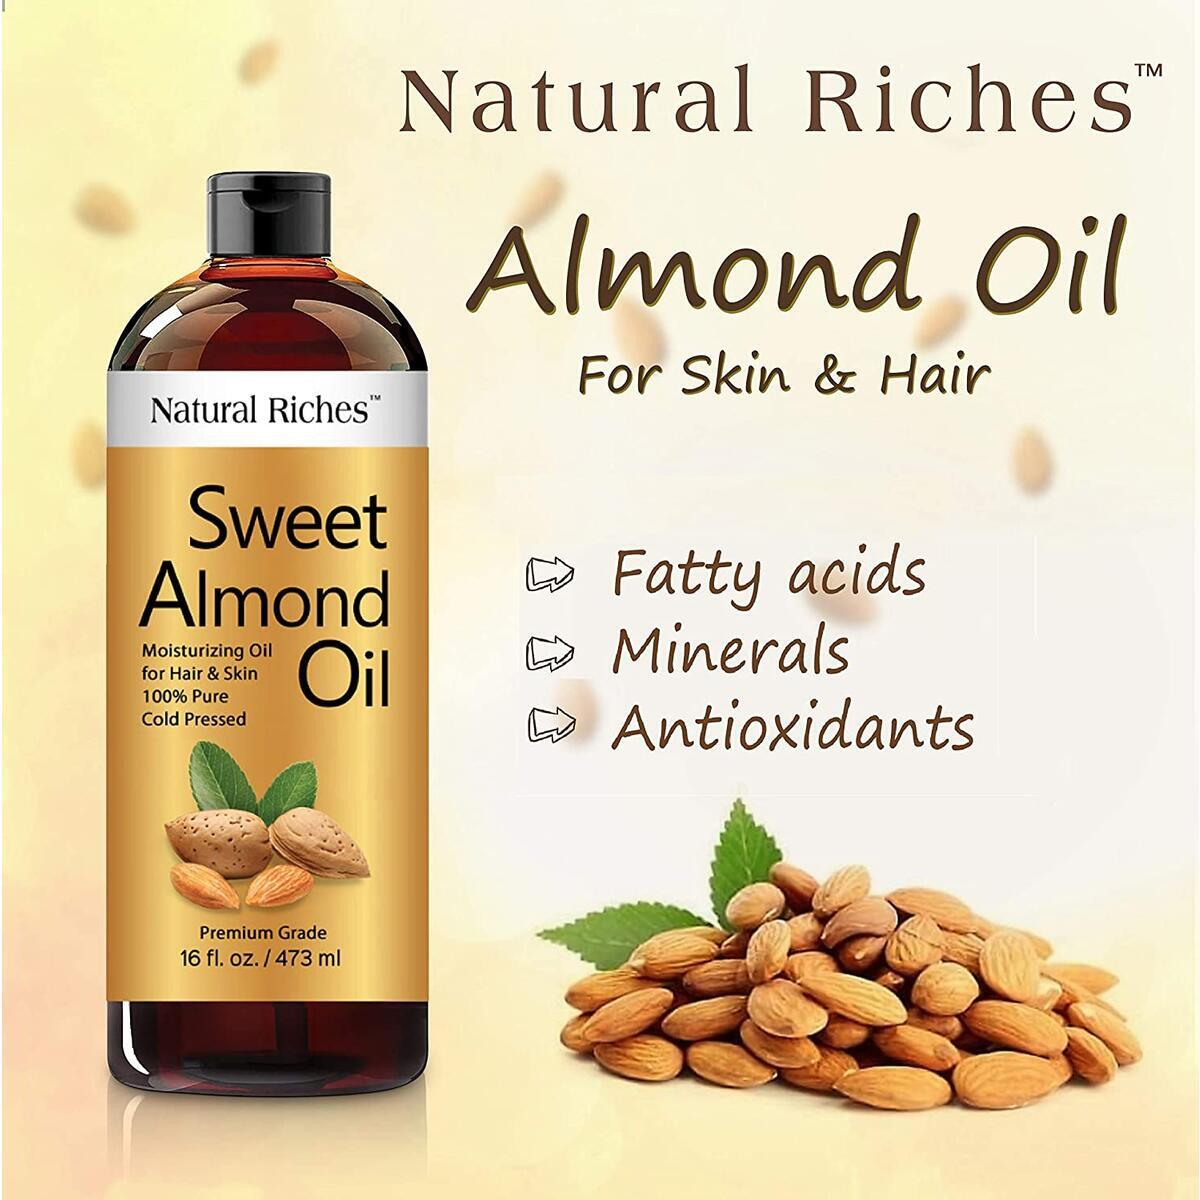 Natural Riches Sweet Almond Oil Cold Pressed, Triple A Grade 100% Pure and Natural Hexane free Soothing Vitamin E Oil for Skin & Face, Facial Polish, Full Body, Massages, DIY Base (Almonds Grown in USA.)…